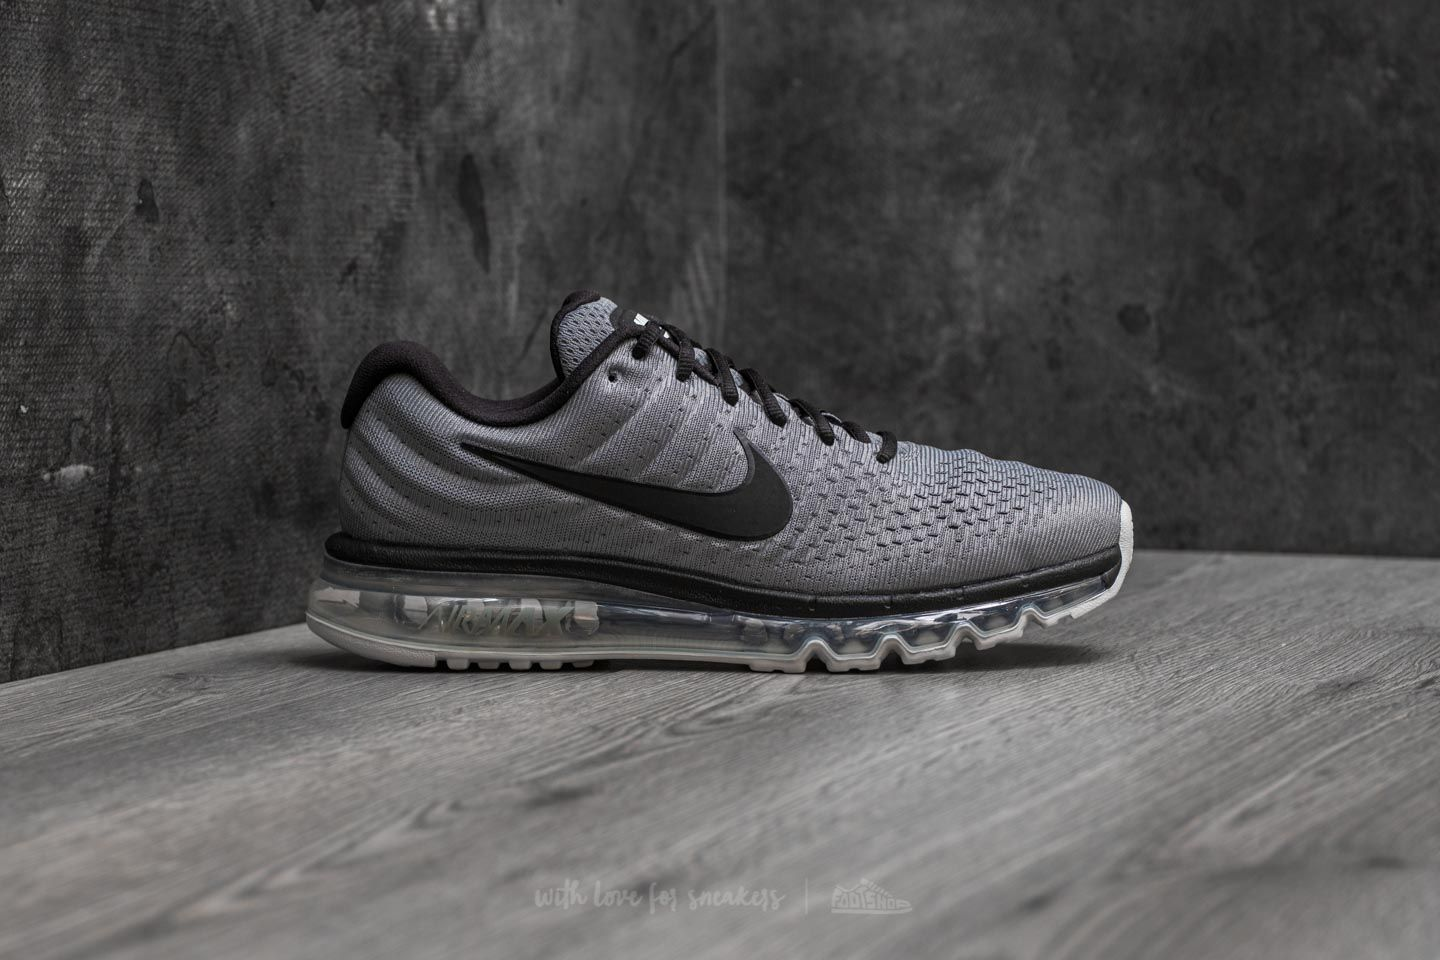 buy popular 3dc8b 9524d Nike Air Max 2017 Cool Grey Black-Pure Platinum at a great price 191